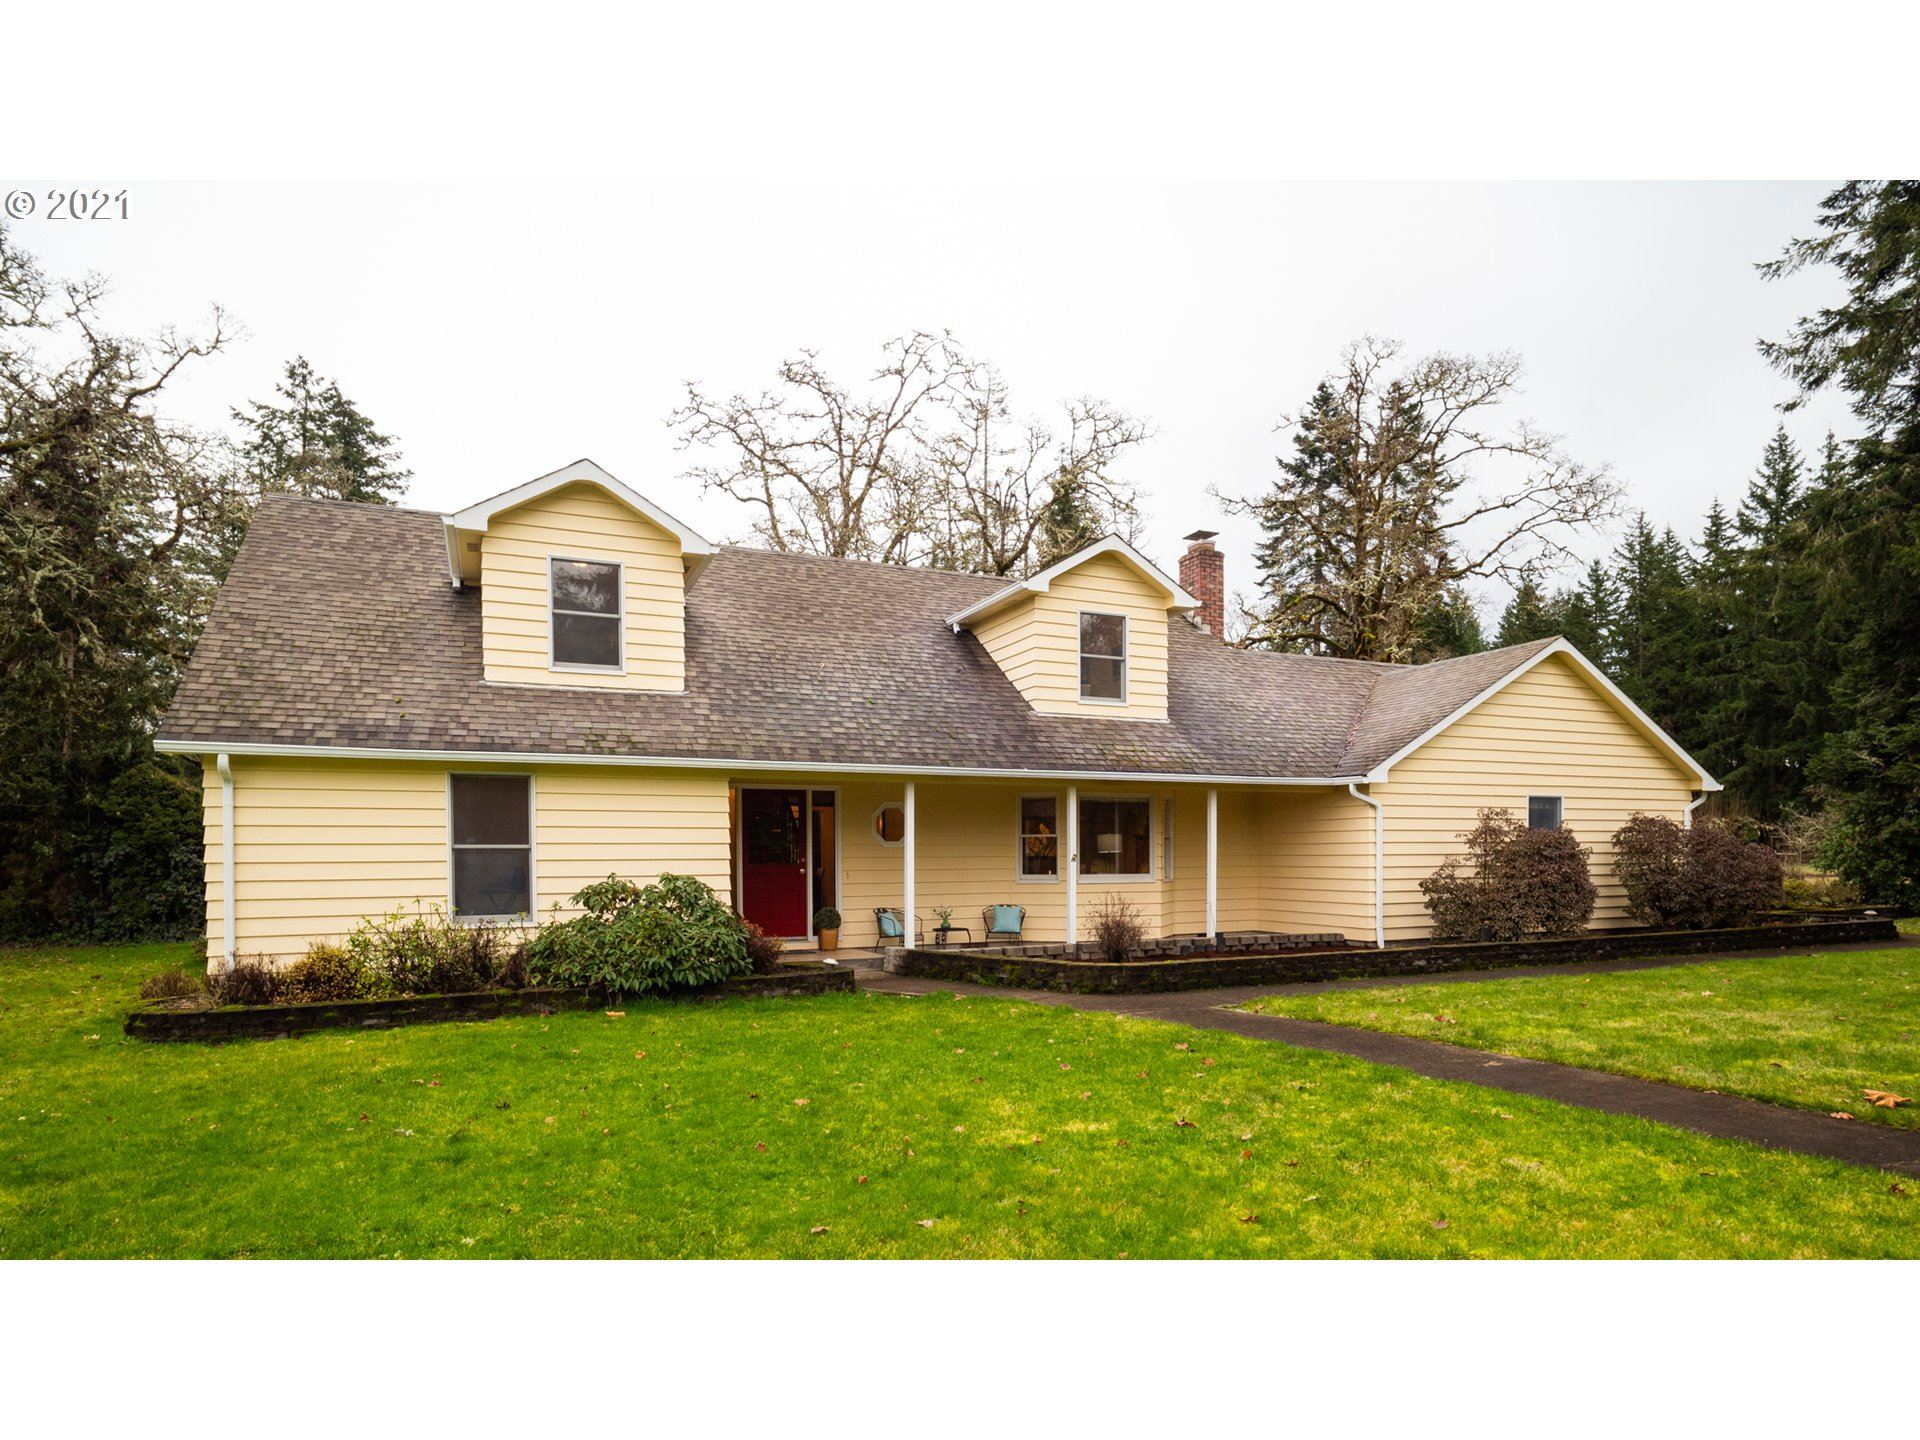 Photo for 84007 BROWN RD, Dexter, OR 97431 (MLS # 21217943)